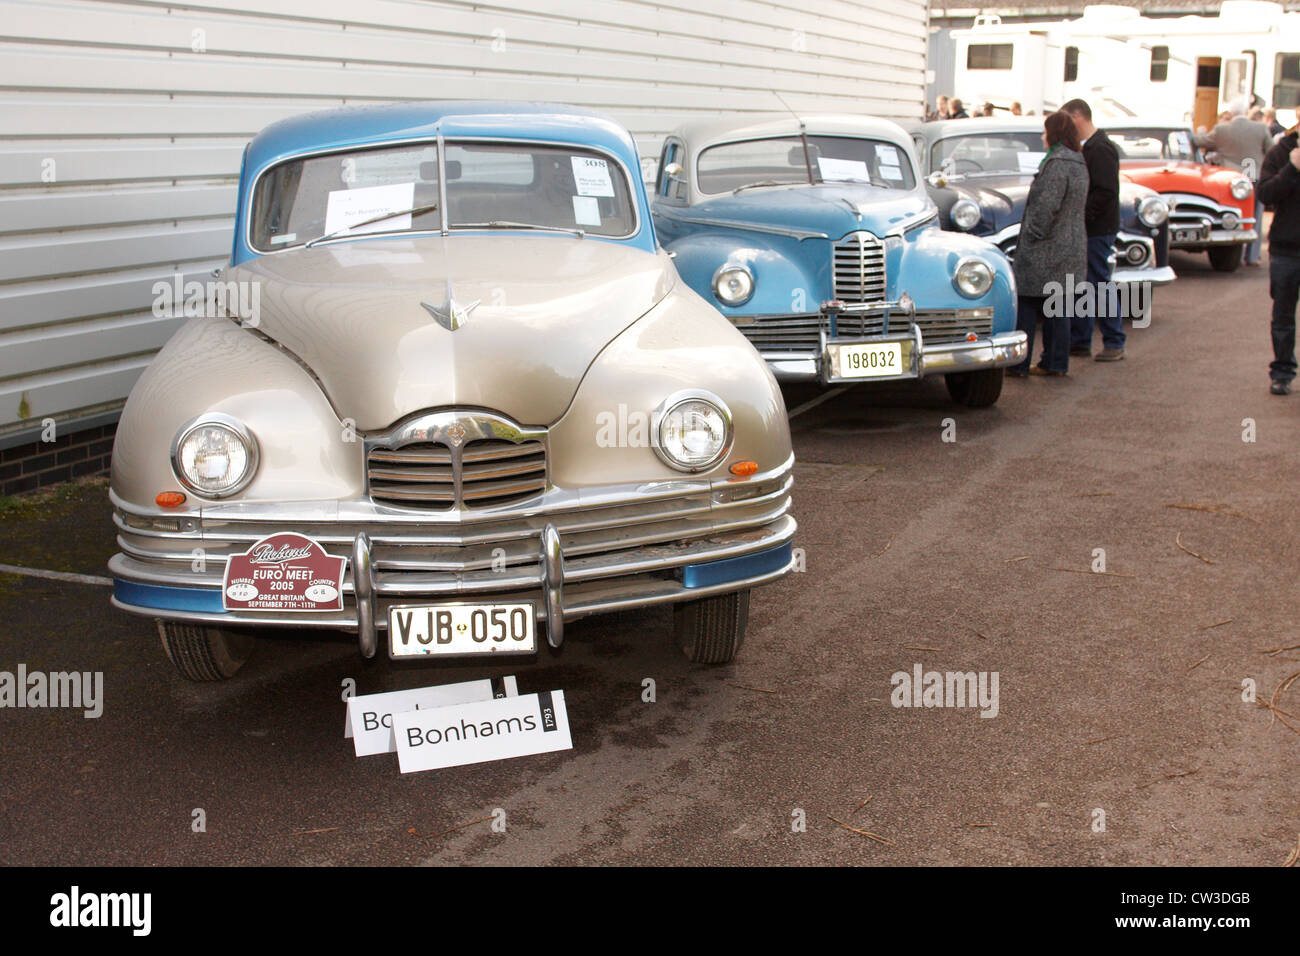 Old Cars For Sale Stock Photos Old Cars For Sale Stock: A Number Of 1940s Vintage Packard Cars Form Part Of A